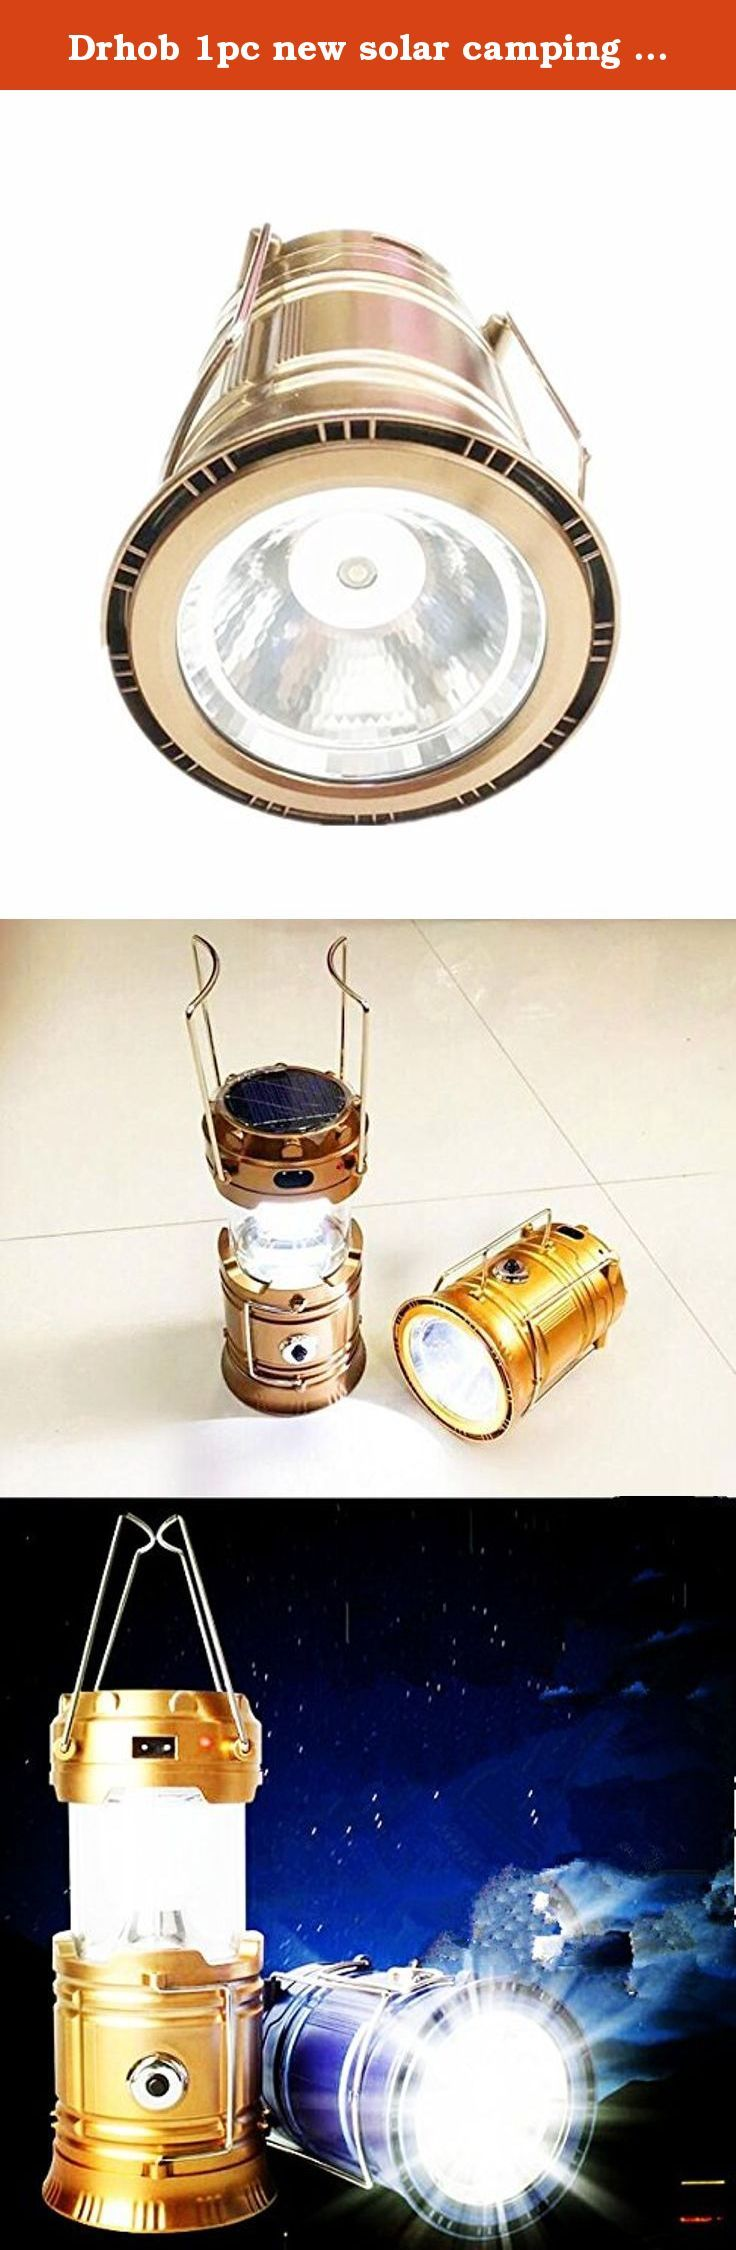 Drhob 1pc new solar camping lamp can stretch emergency small lantern light folding tent camping lamp lantern. New tent lamp, can put can lift can hang, copy the design of the lamp, can be widely used in outdoor camp, tent, rides, fishing, hunting and so on various kinds of outdoor activities, also can be put in when small night lamp used in the home, is a good tool to travel at home. Product features: : (1) with three kinds of power-supply modes, solar charger, battery, charging directly...